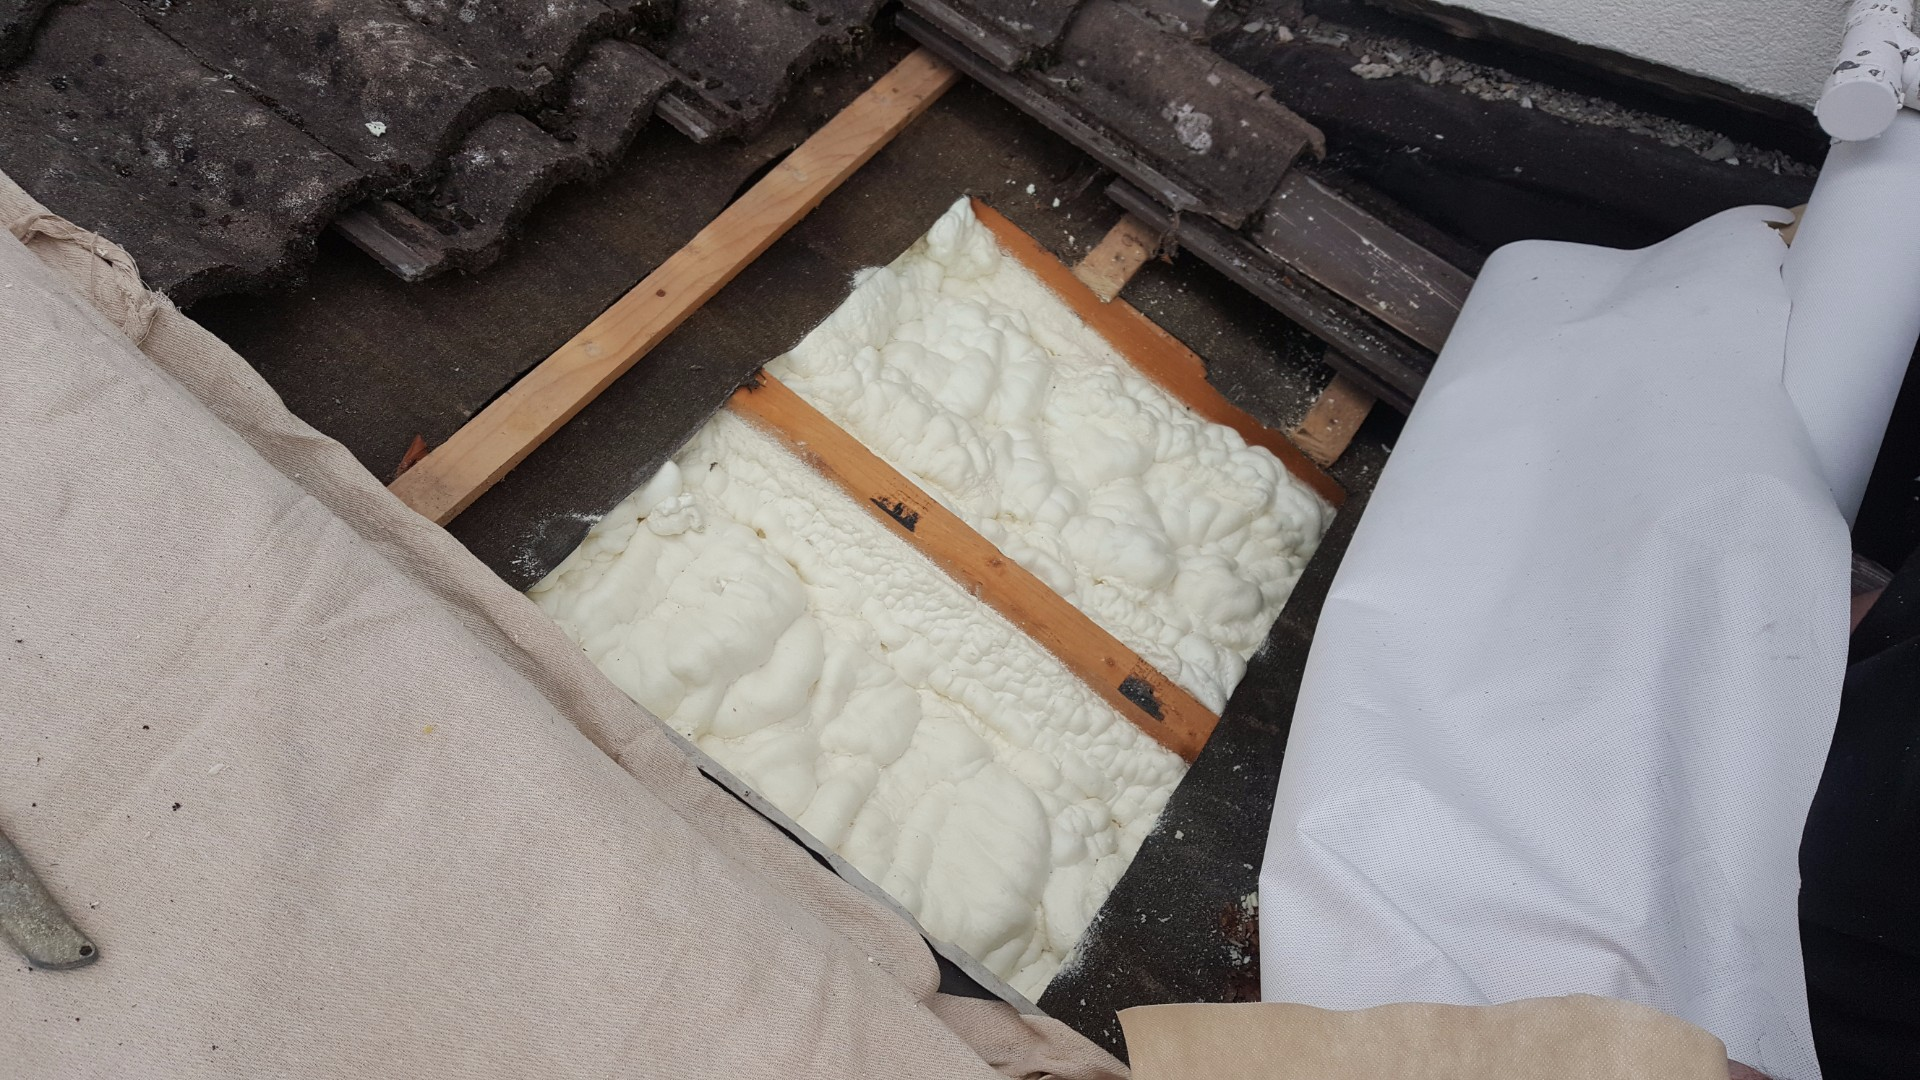 Roof Insulation Experts Spray Foam Services Interiors Inside Ideas Interiors design about Everything [magnanprojects.com]